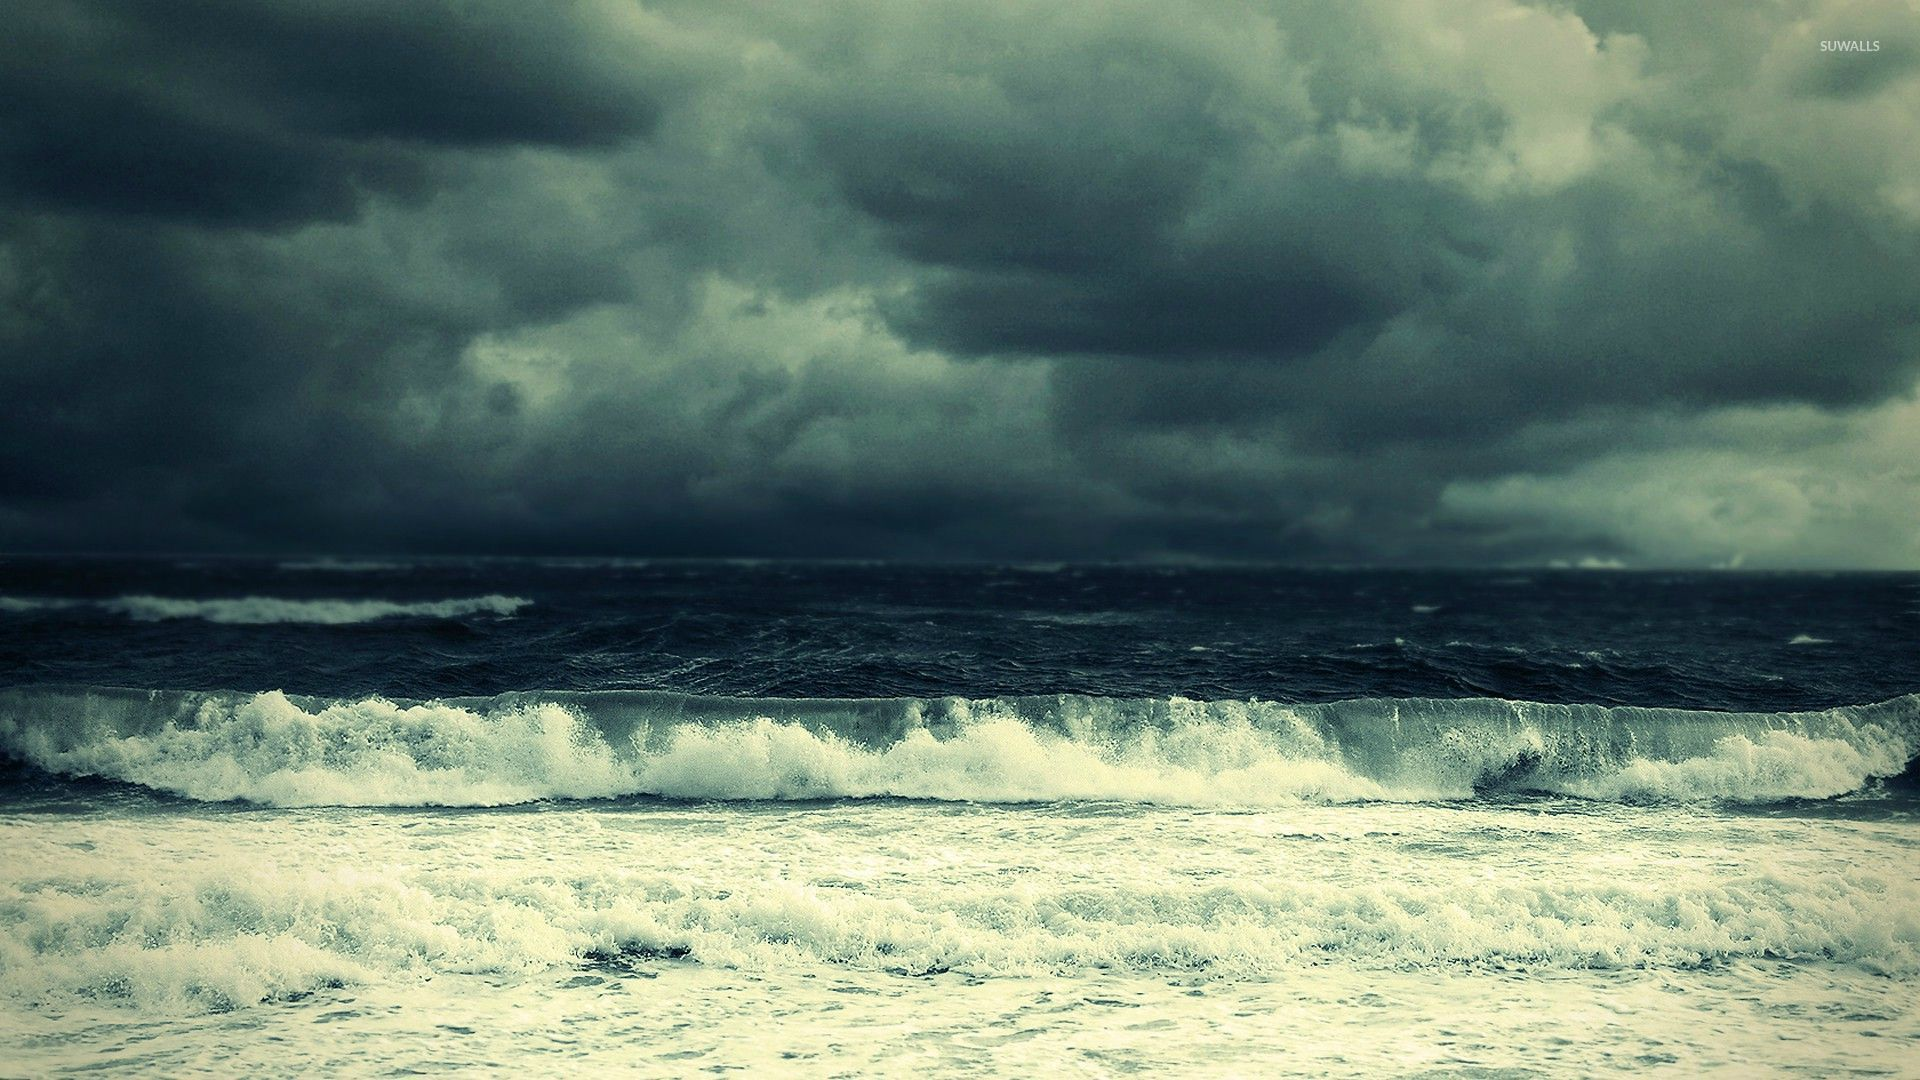 Stormy sea wallpaper - Beach wallpapers - #26679